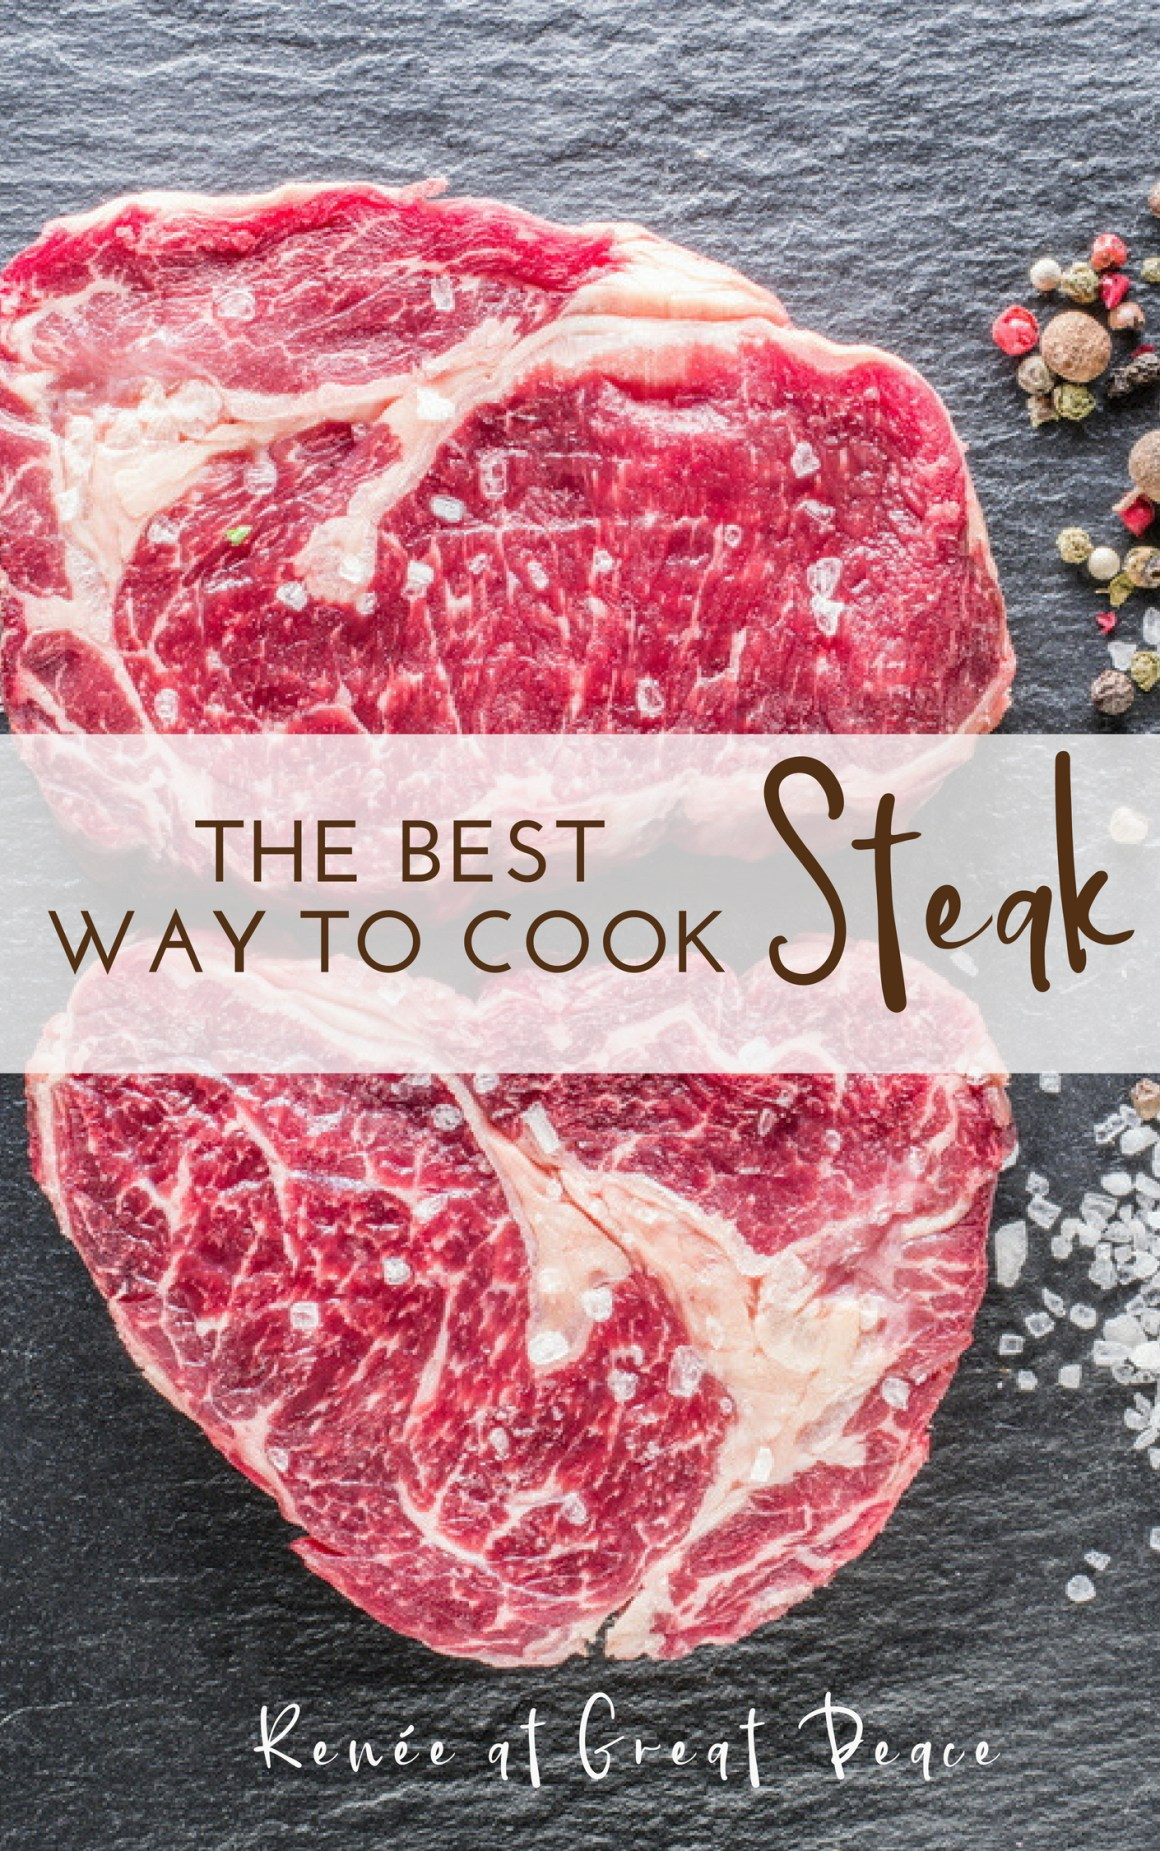 The Best Way to Cook Steak: Summer Dinner Ideas | Renée at Great Peace #summerdinners #mealplanning #steak